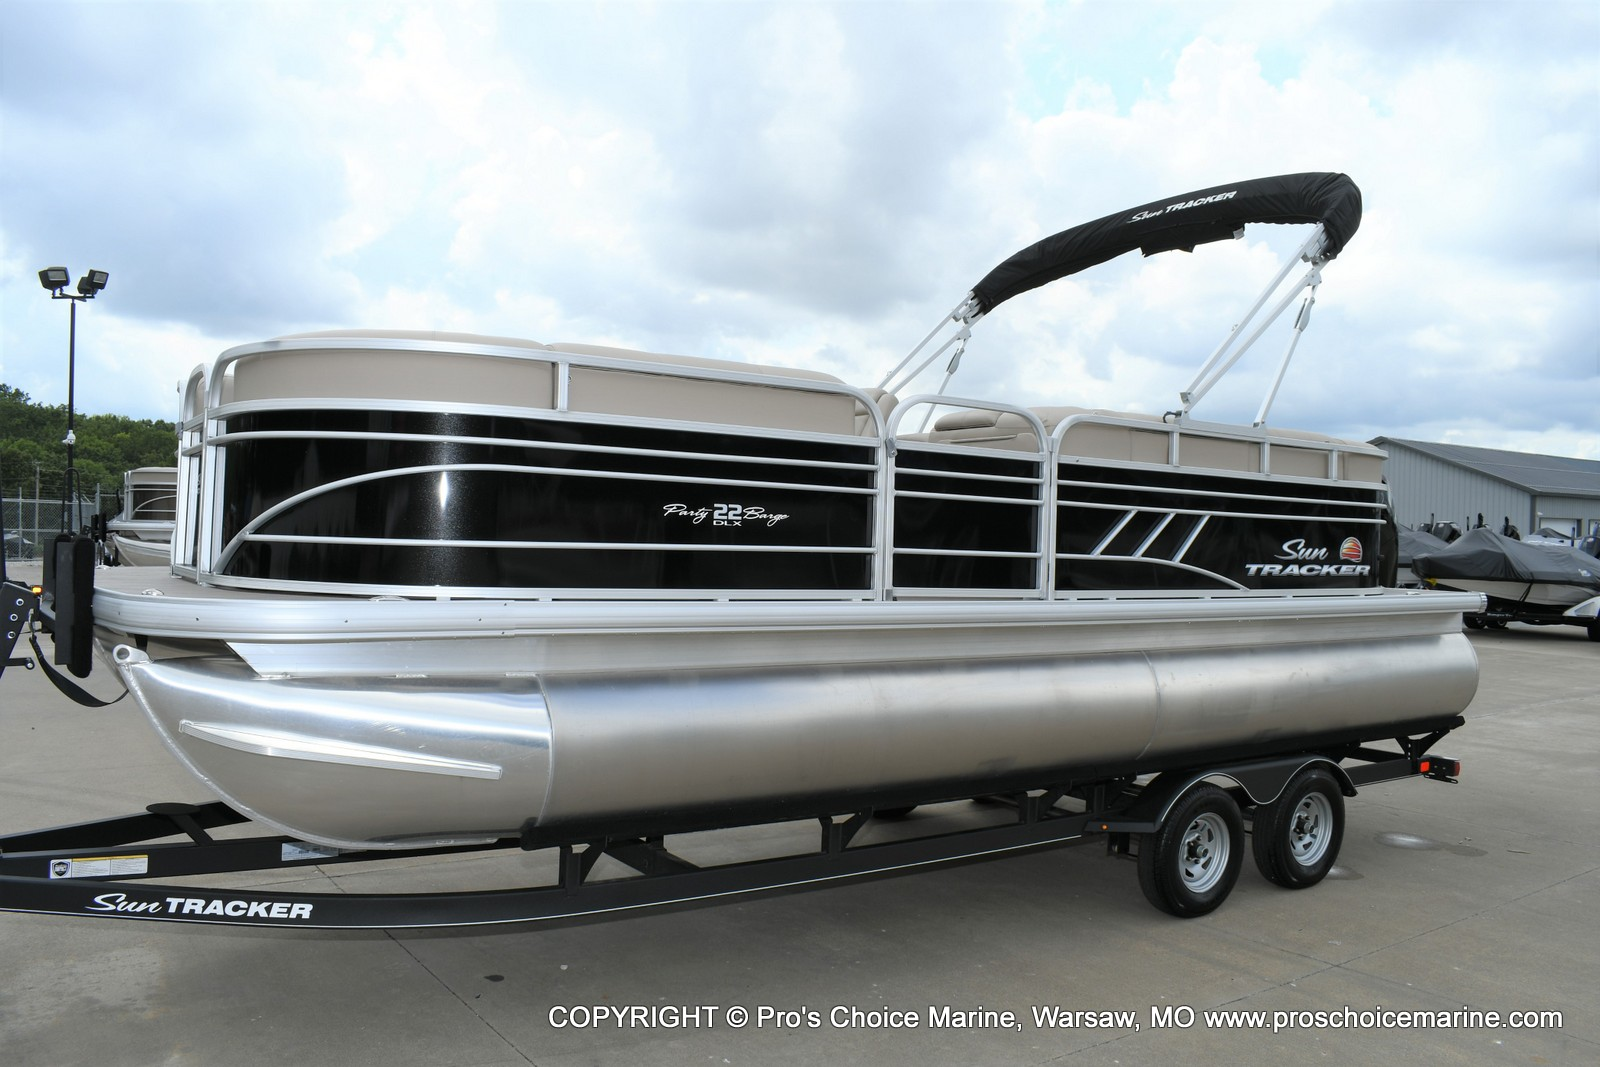 2020 Sun Tracker boat for sale, model of the boat is Party Barge 22 DLX & Image # 10 of 50